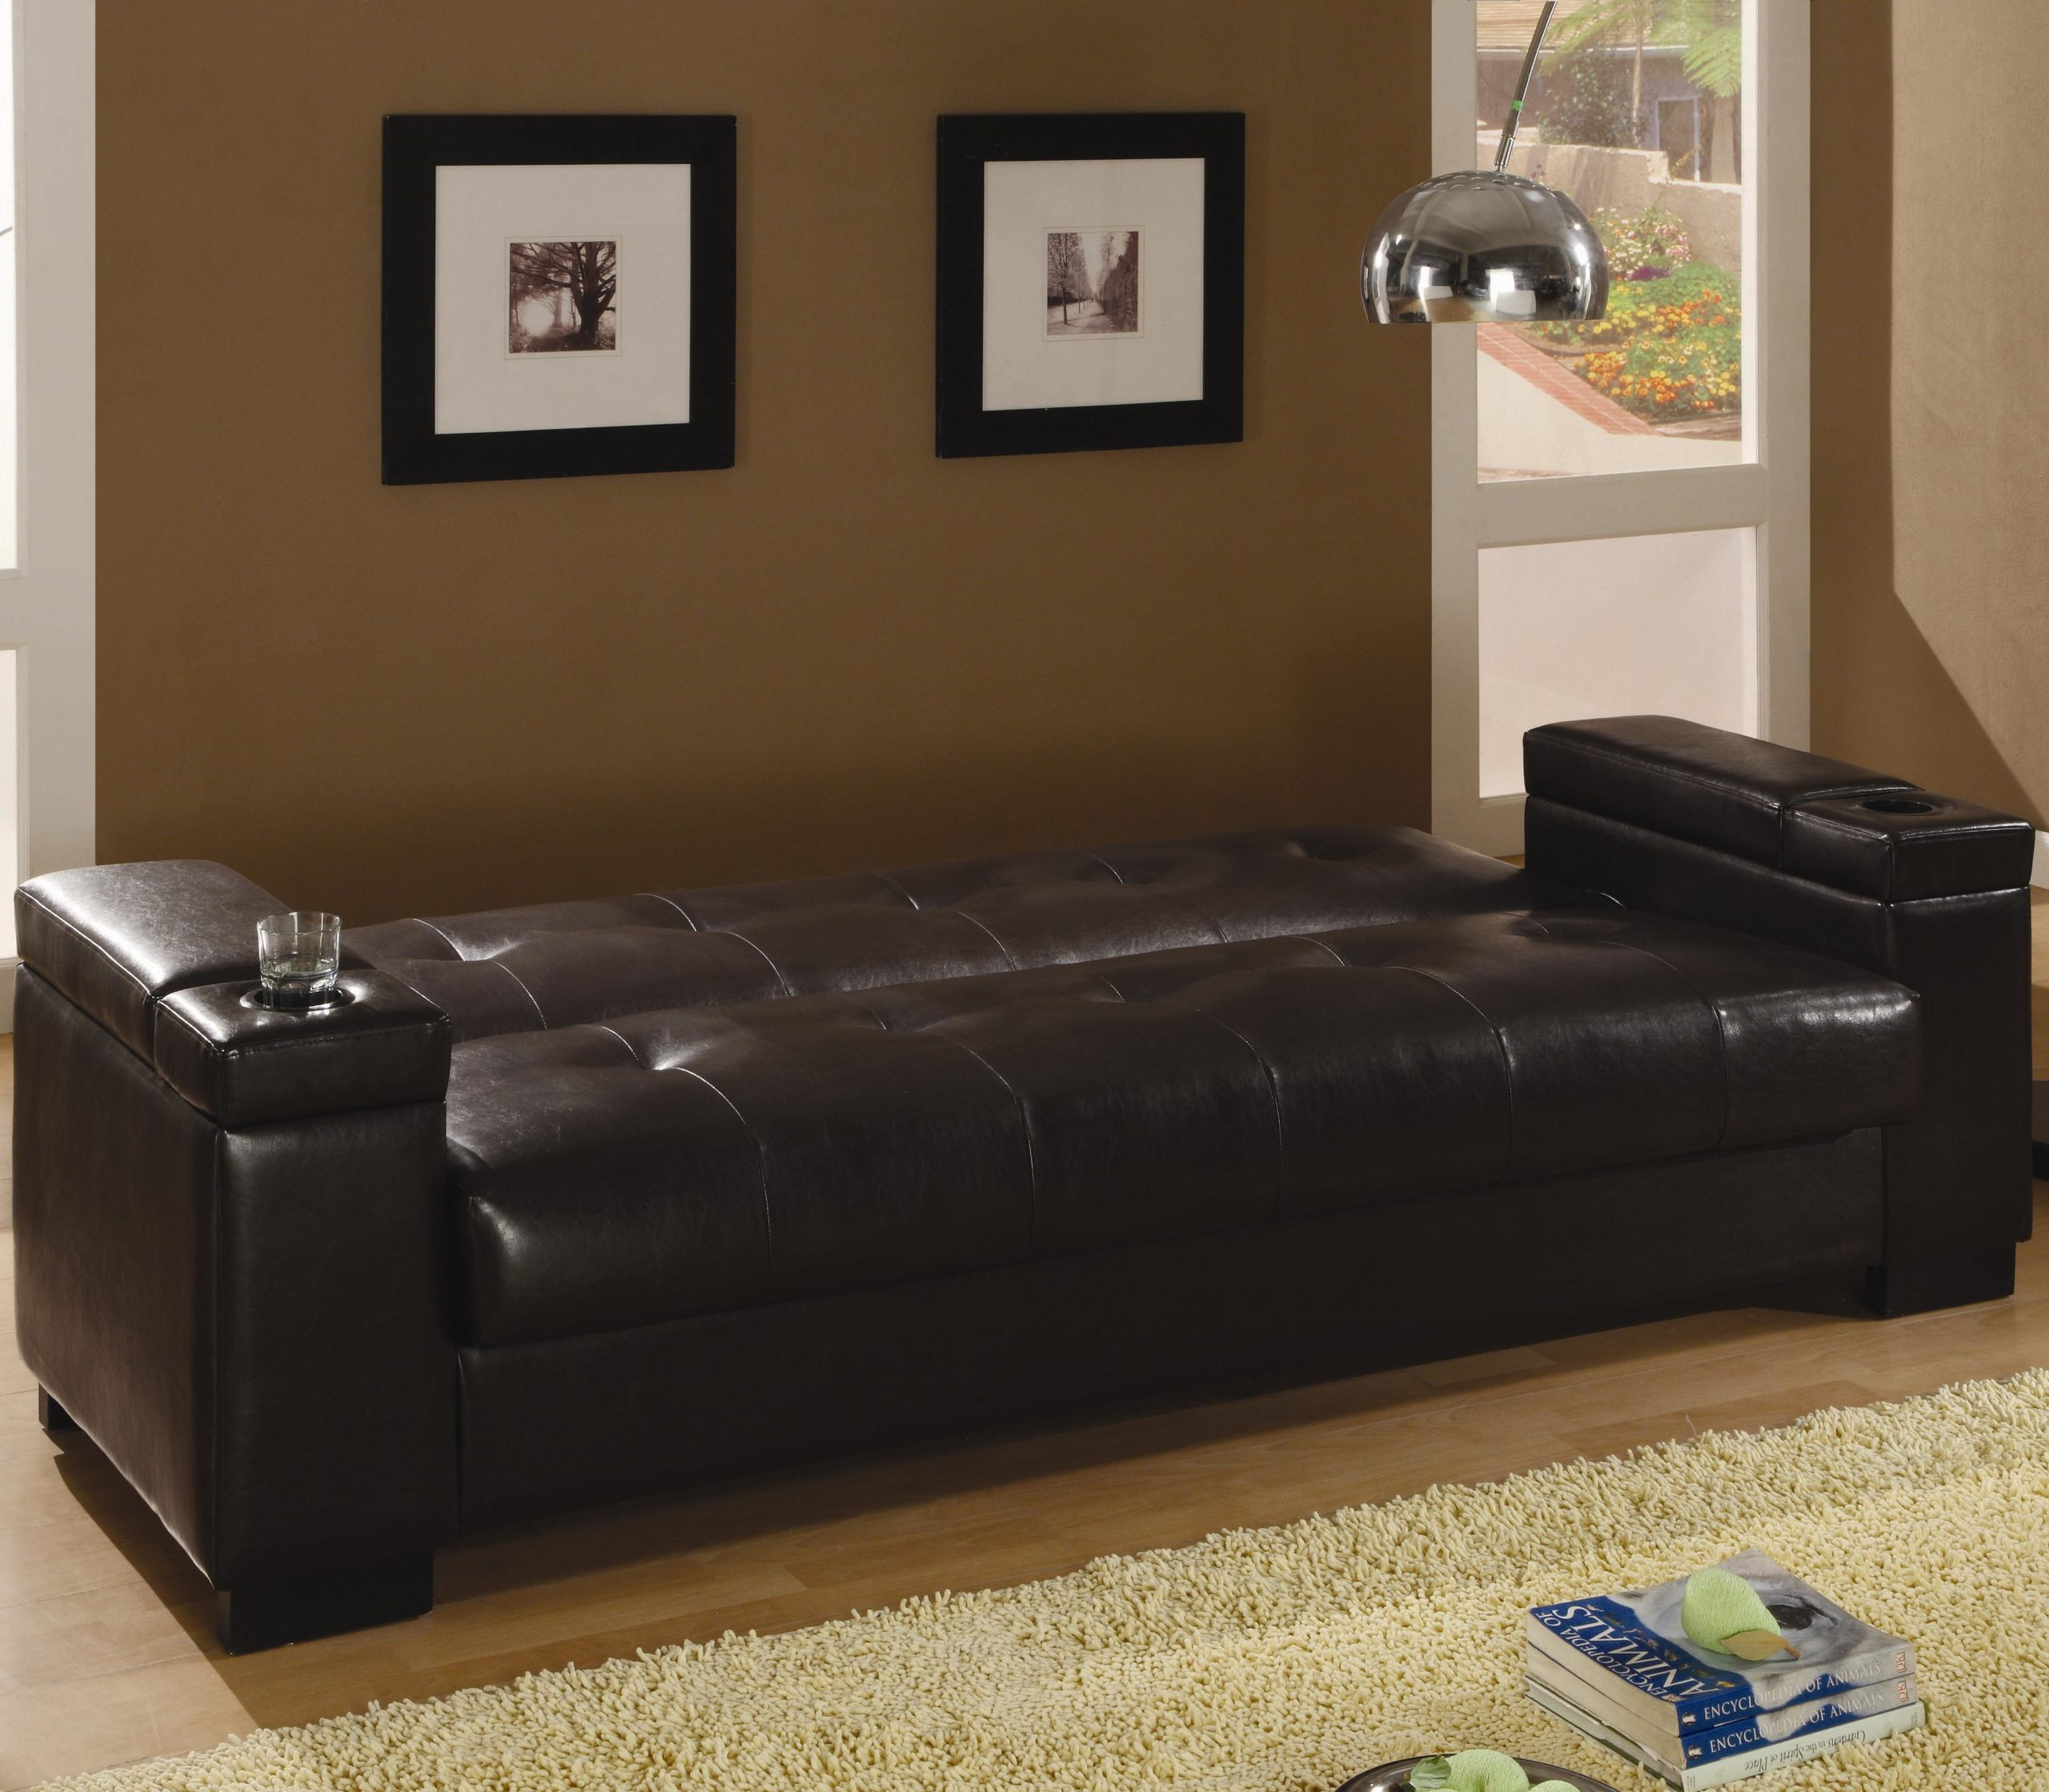 Brown Faux Leather Convertible Sofa Sleeper with Storage down position